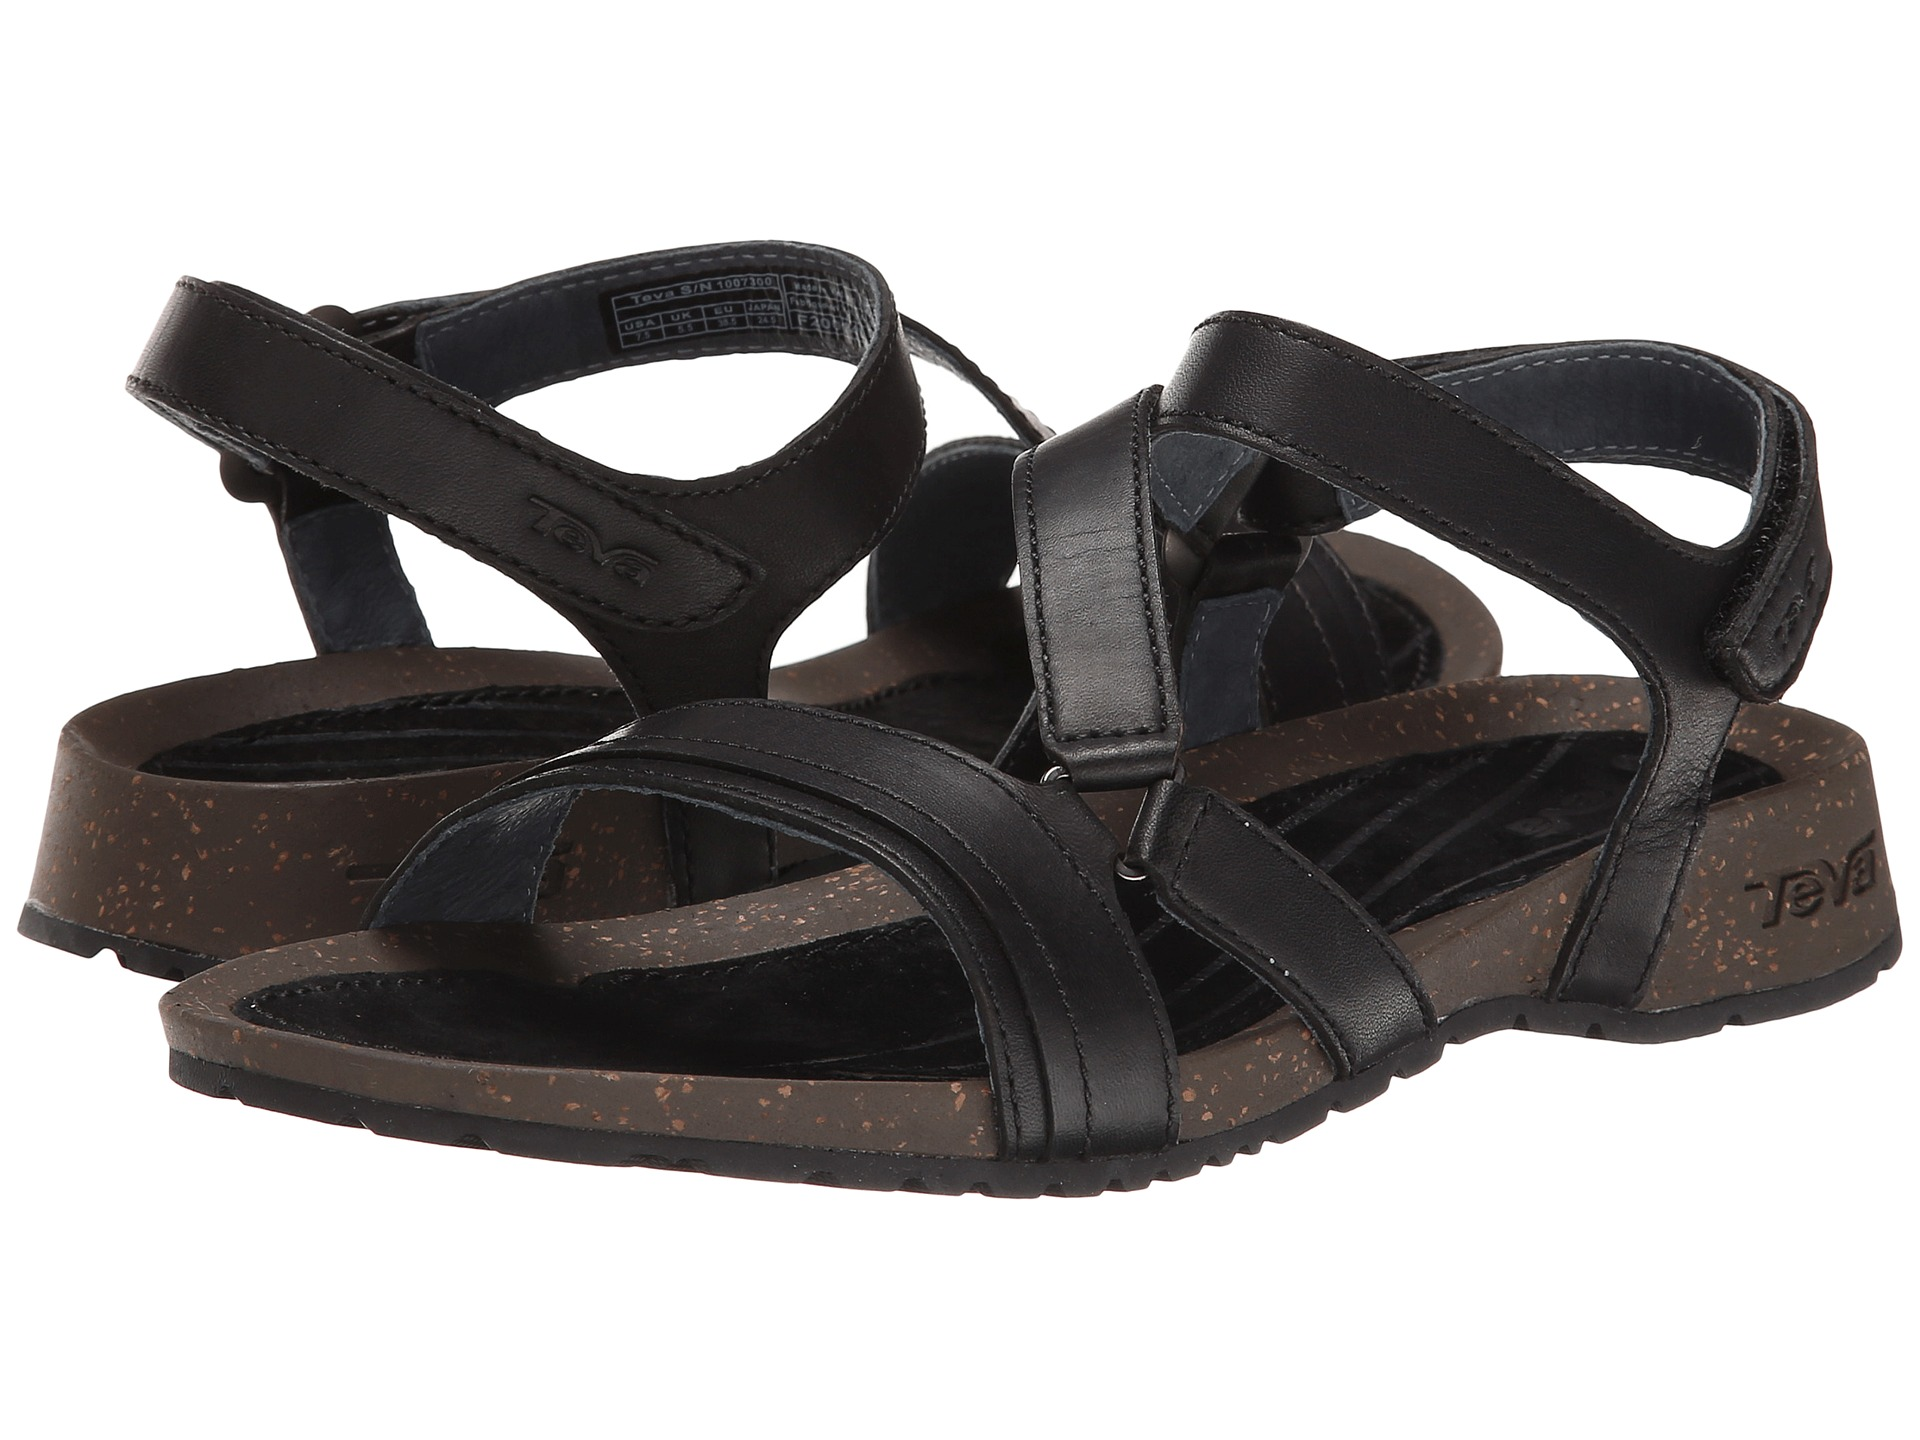 Teva Womens Sale: Save Up to 50% Off! Shop softplaynet.ga's huge selection of Teva Womens for Women - Over styles available. FREE Shipping & Exchanges, and a % price guarantee!